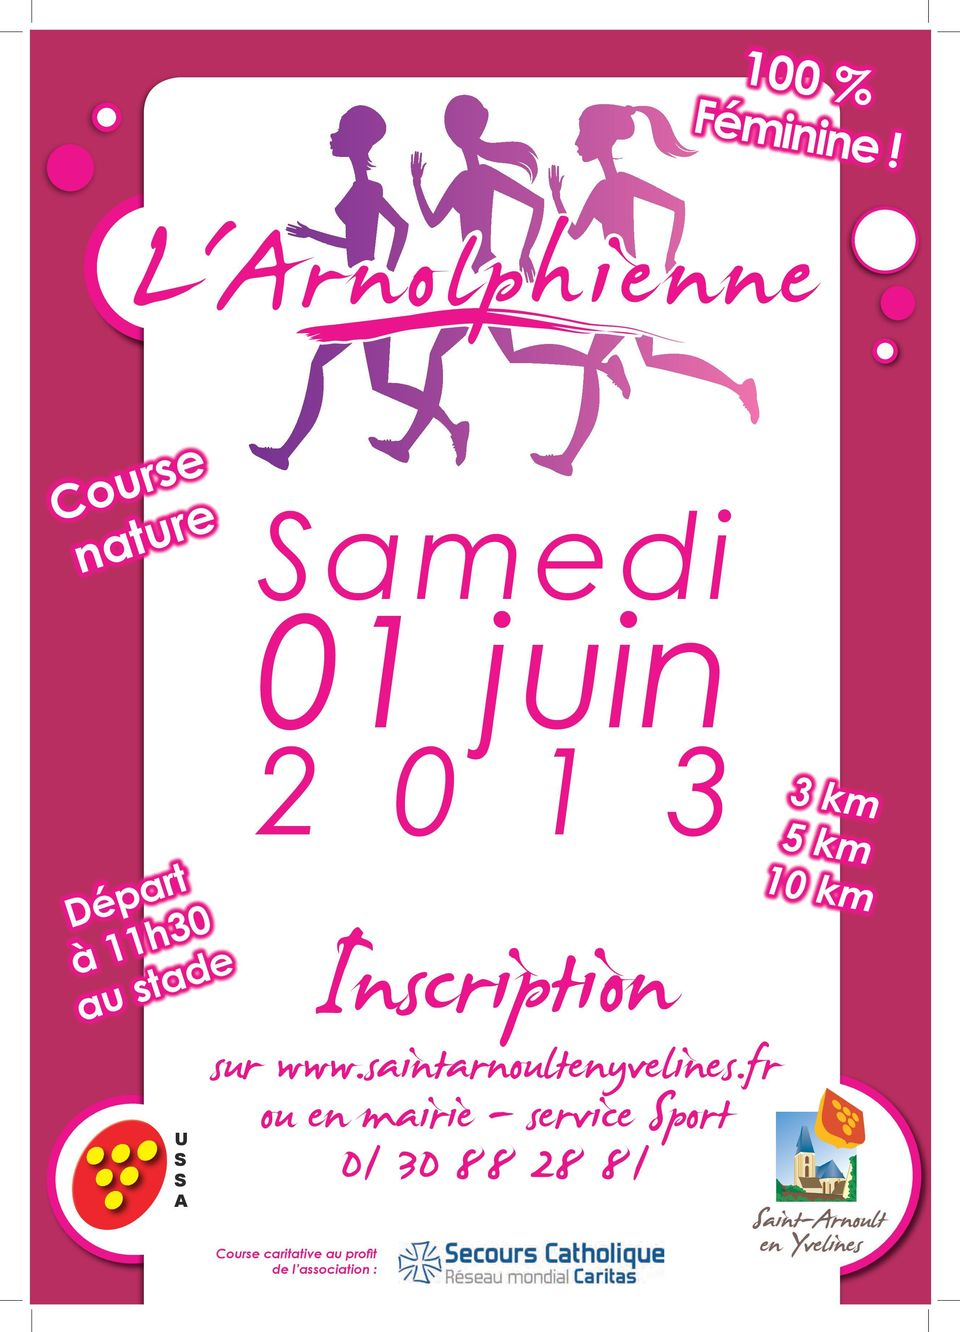 11h30 au stade U S S A 2 0 1 3 Inscription sur ou en